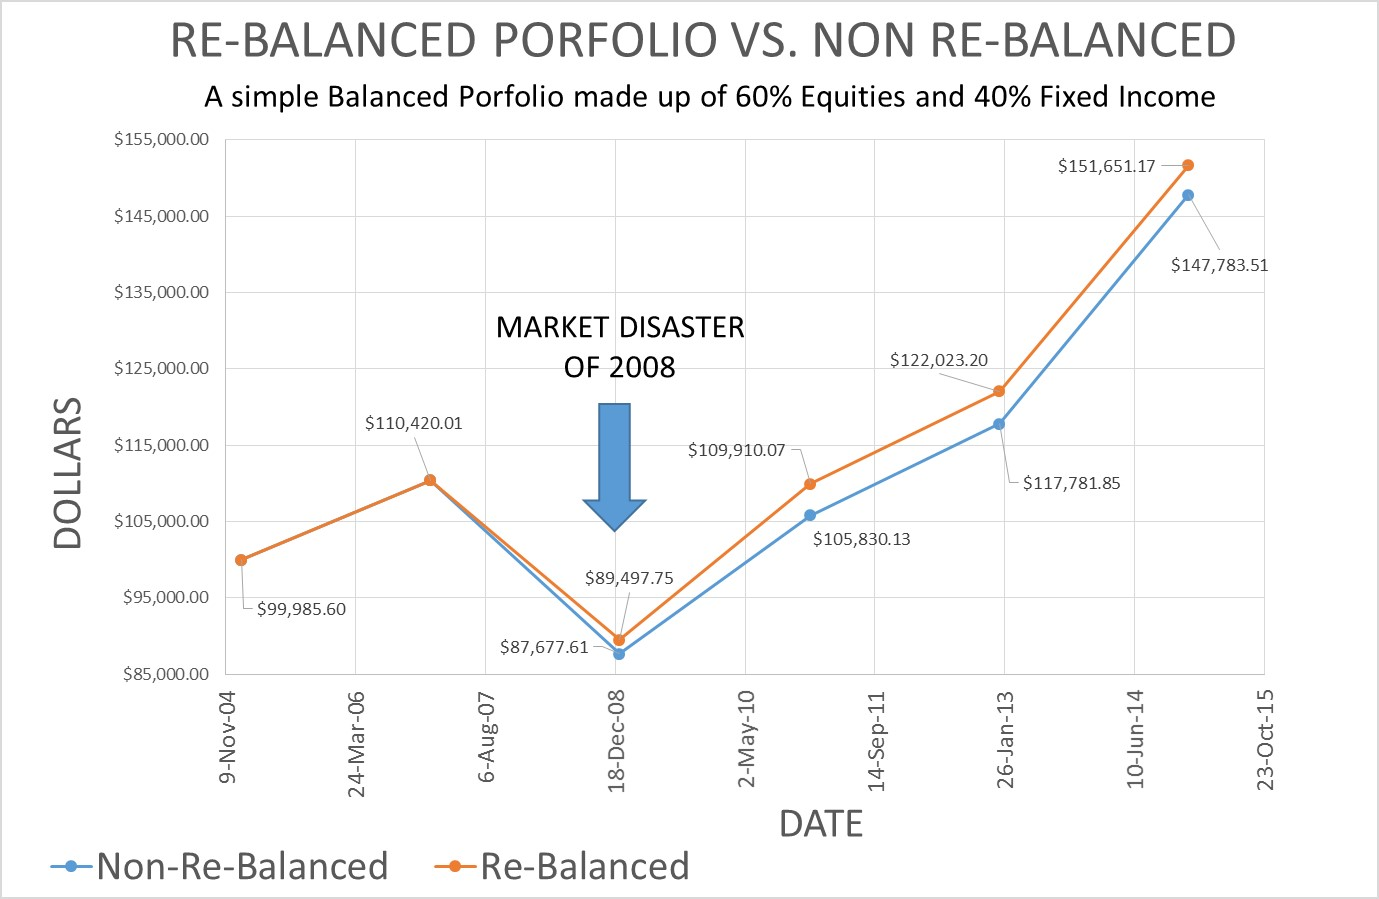 A Balanced Porfolio made up of 60% Equities and 40% Fixed Income showing what re-balancing a portfolio does vs no re-balancing.